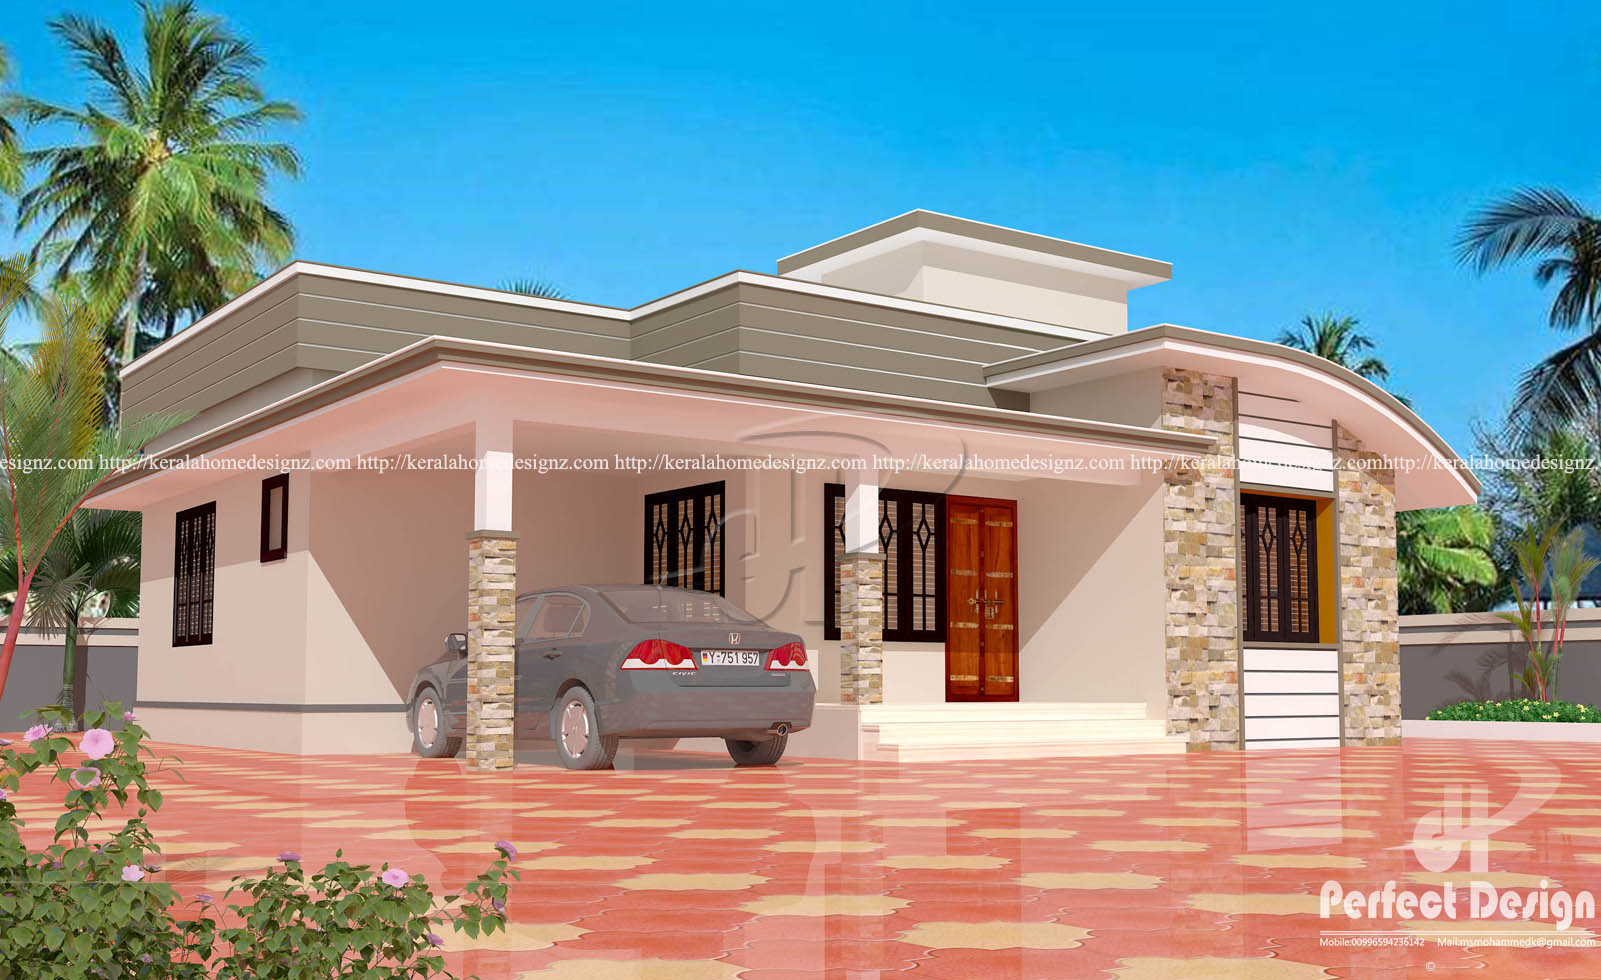 13 Lakhs Cost Estimated Modern Home Design Kerala Home